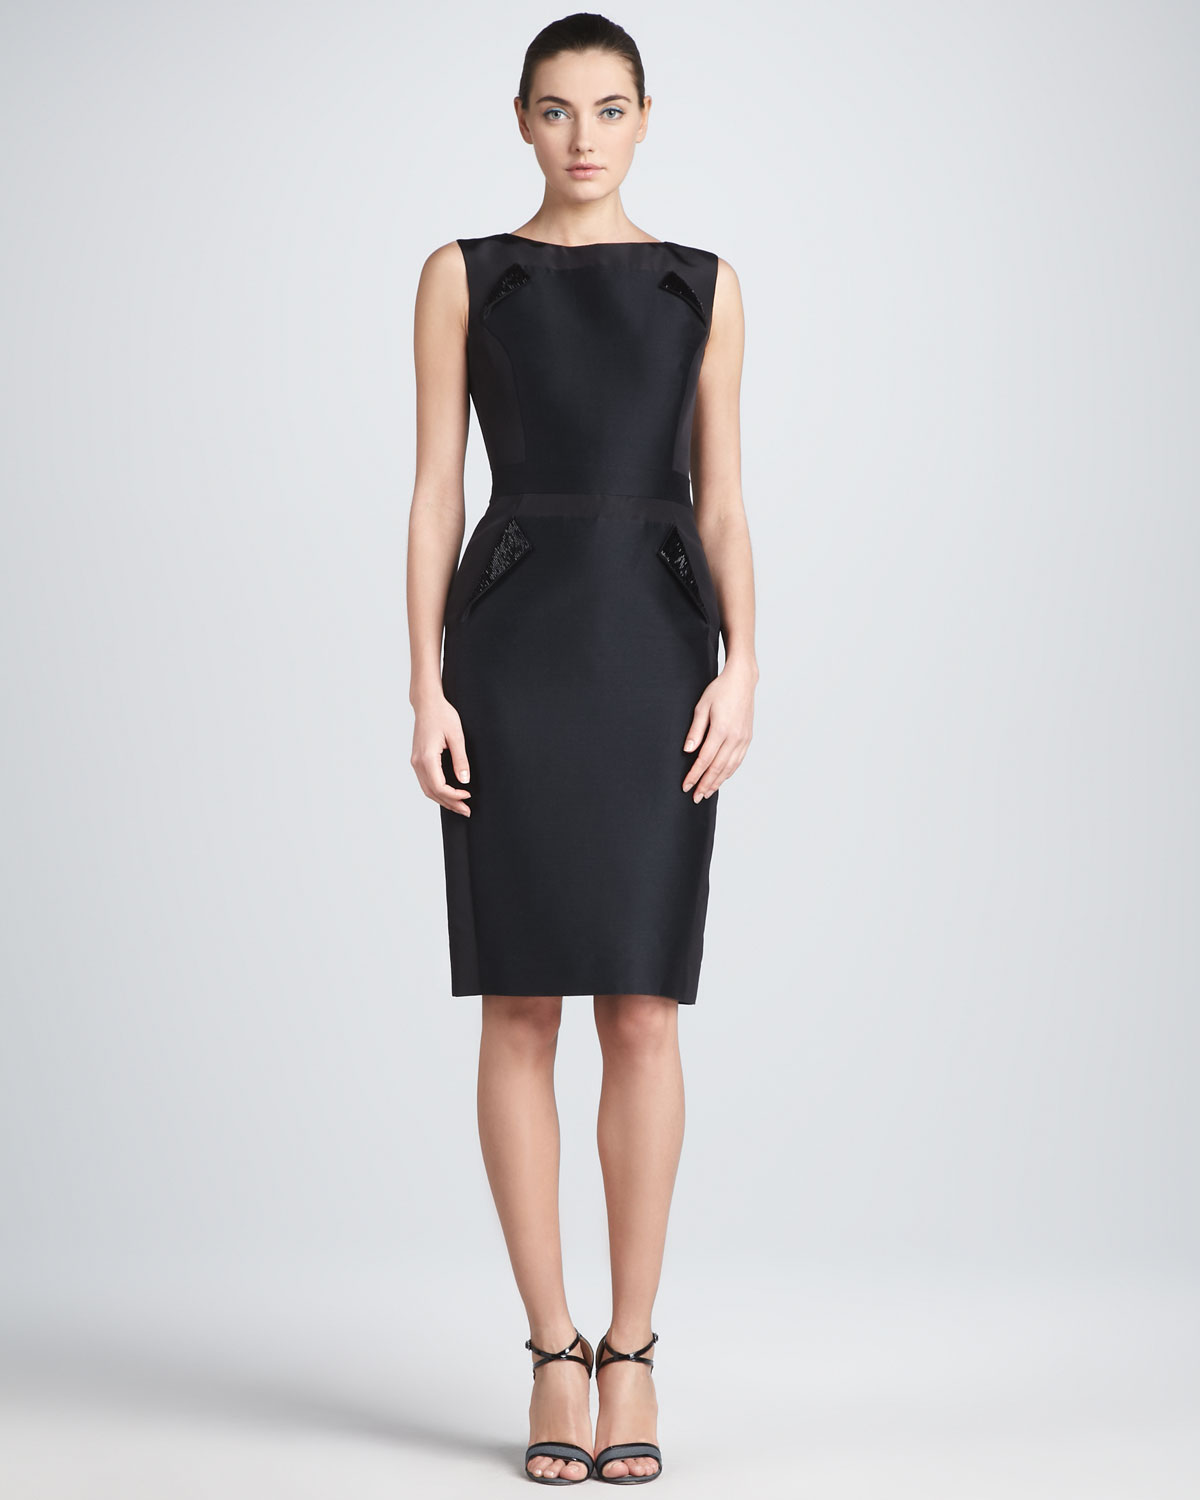 carolina-herrera-black-sleeveless-mikado-sheath-dress-product-1-6359139-097640784